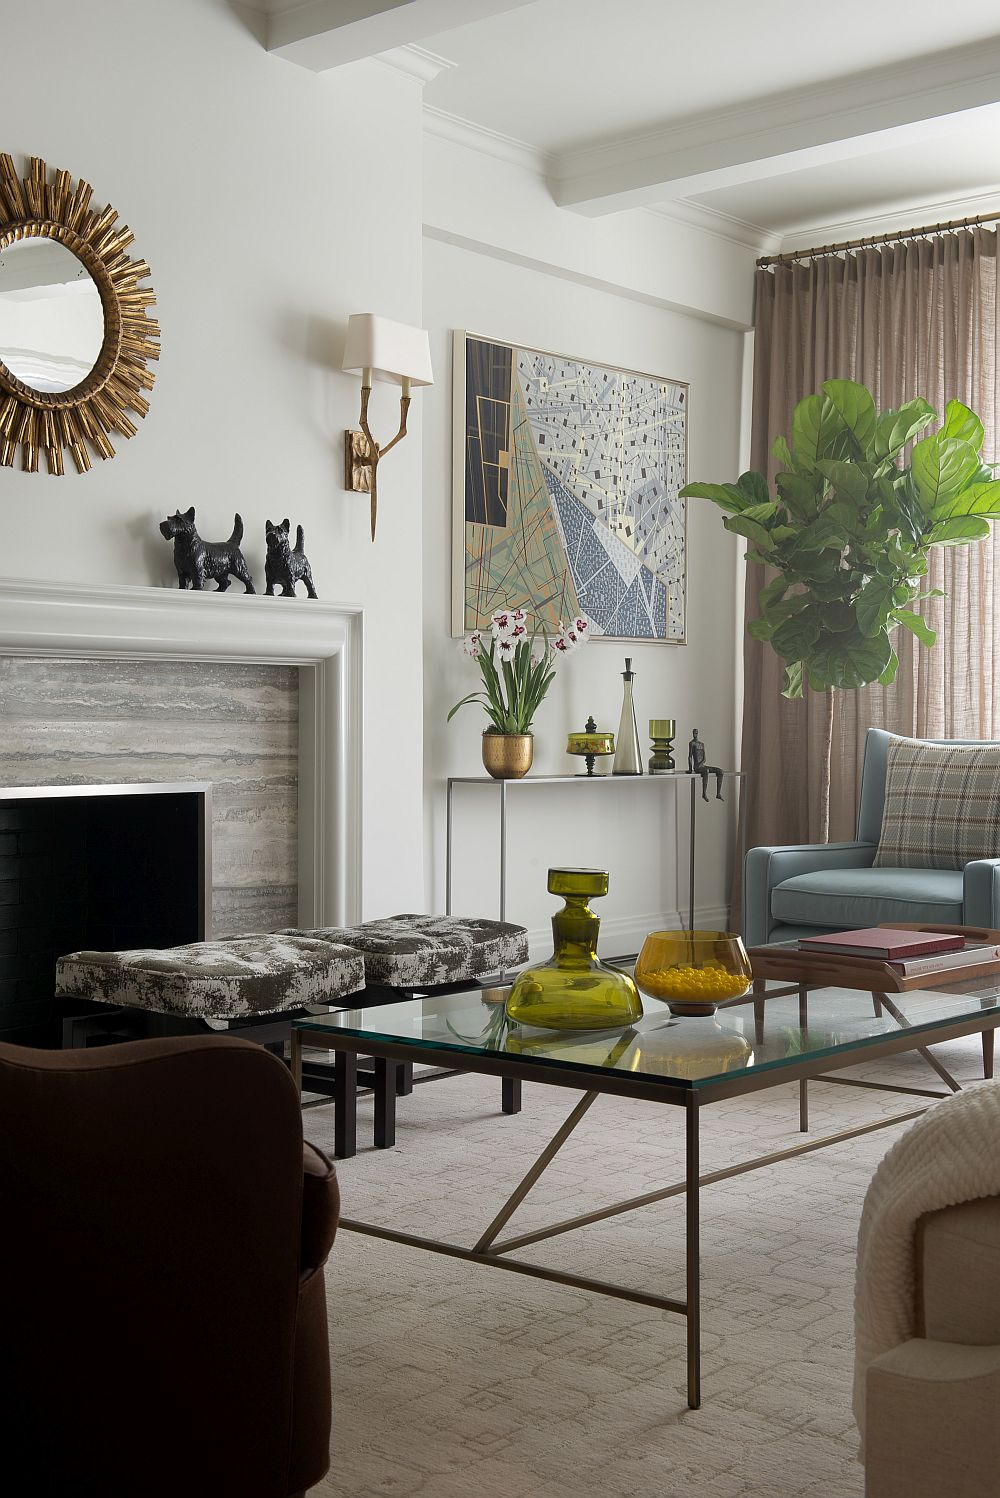 papa bear chair teal colored chairs contemporary new york apartment with chic midcentury vibe